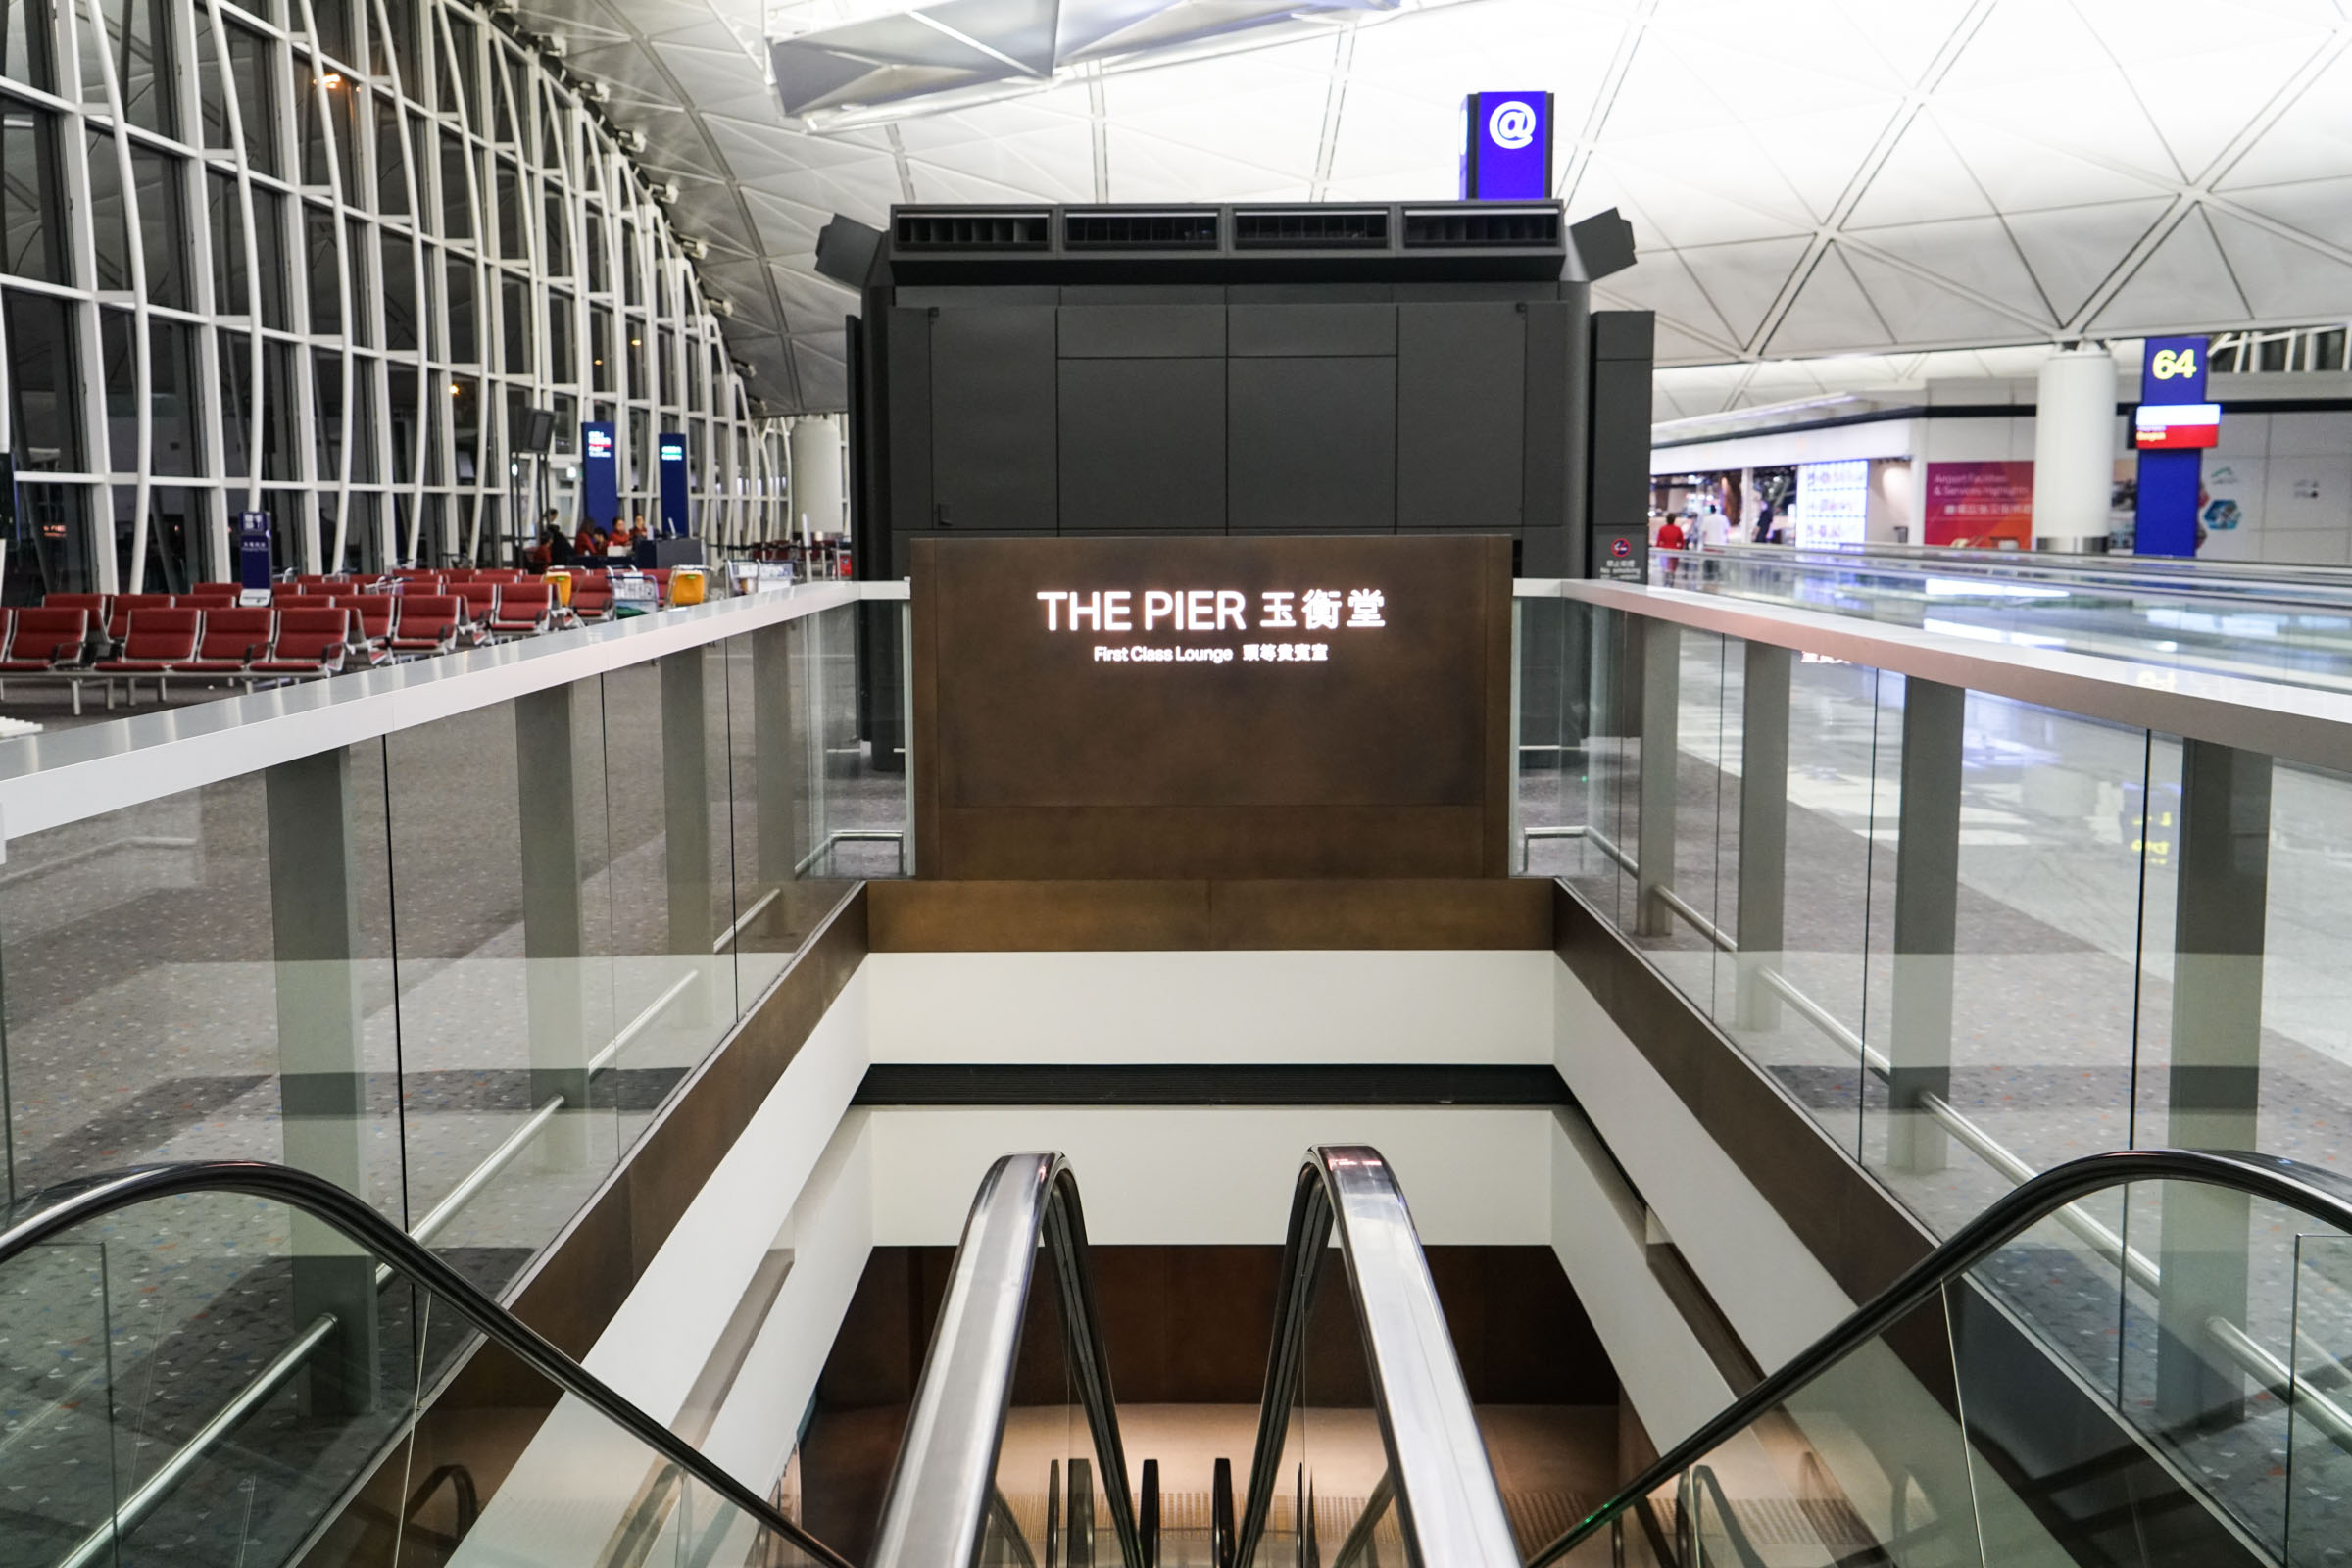 Cathay Pacific's The Pier, First